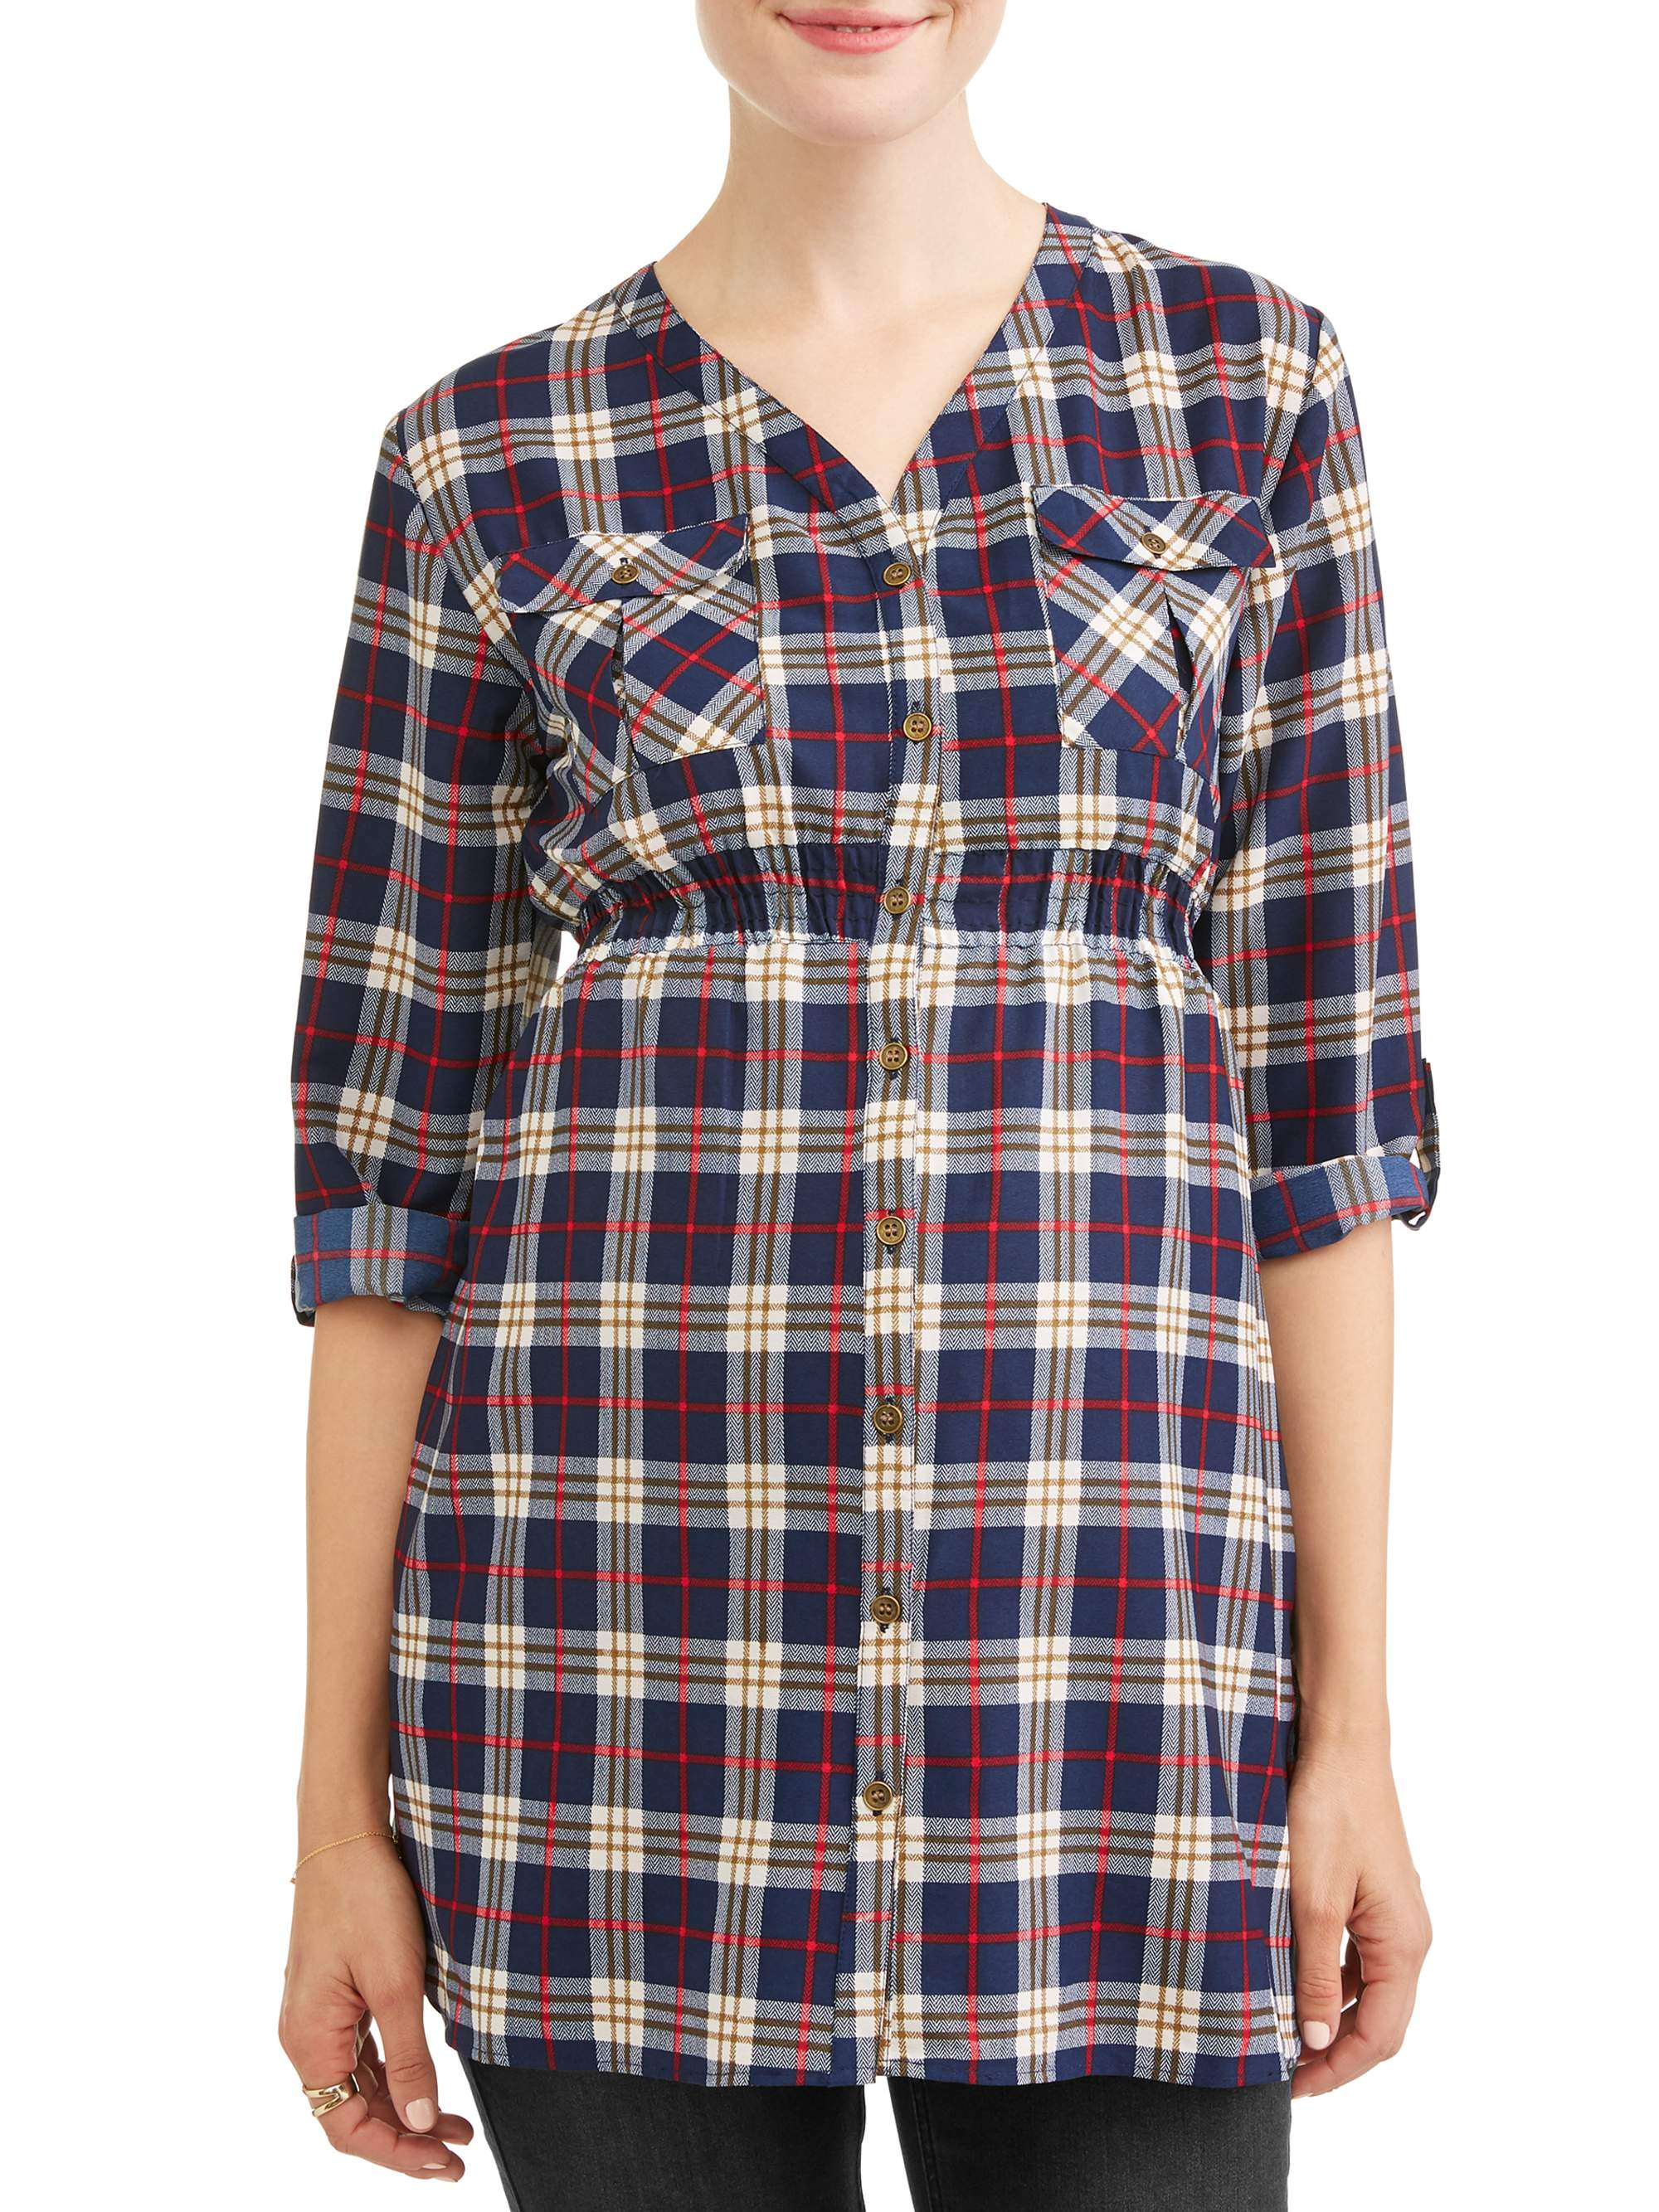 Maternity Two Pocket Plaid Top - Available in Plus Sizes